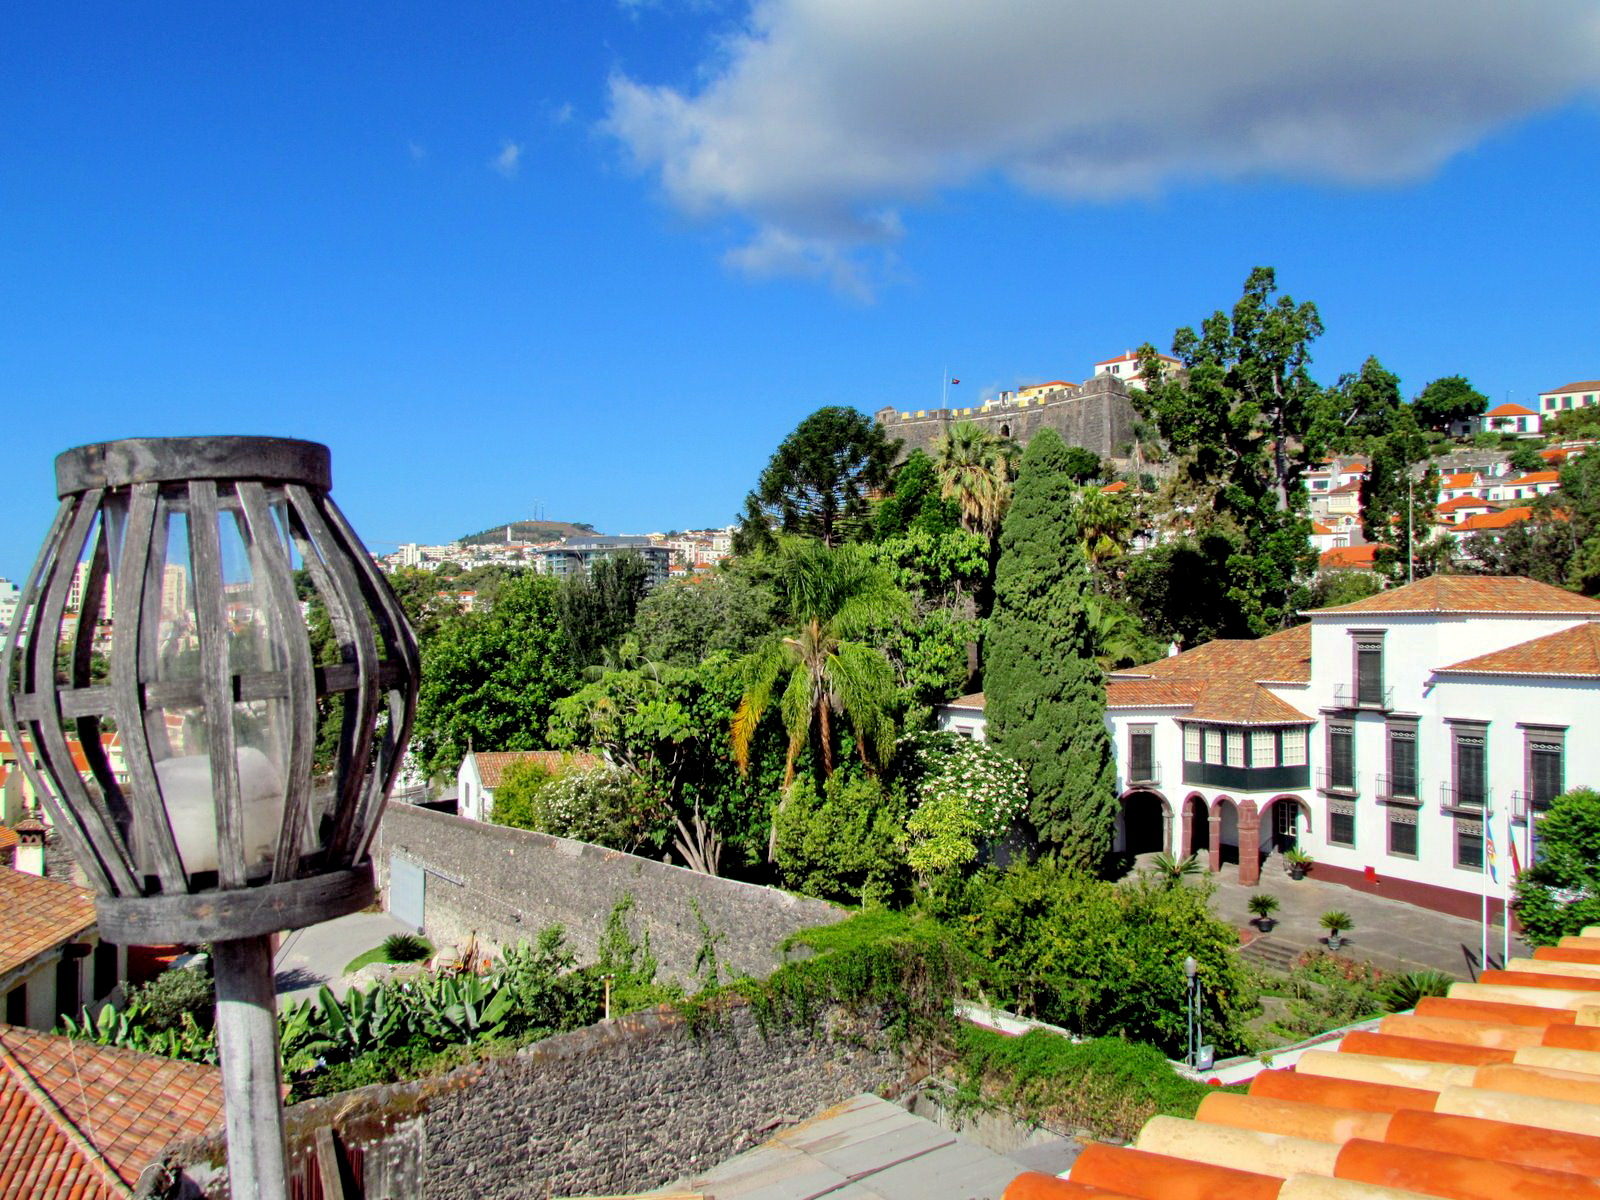 Funchal city made today 503 years